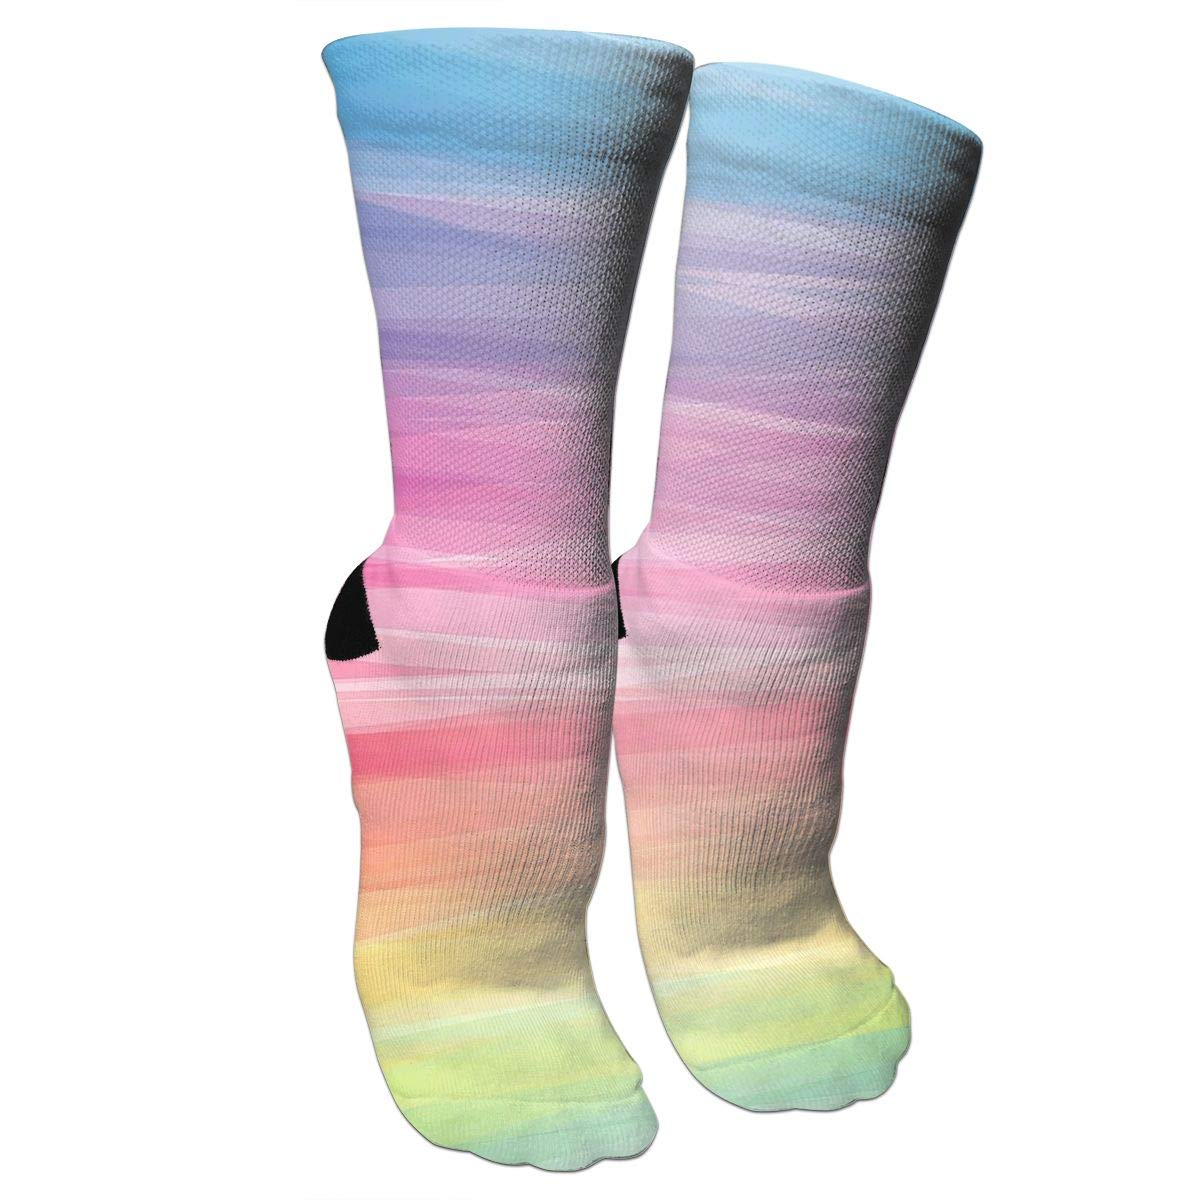 Colorful PatternCrazy Socks Casual Cotton Crew Socks Cute Funny Sock Great For Sports And Hiking